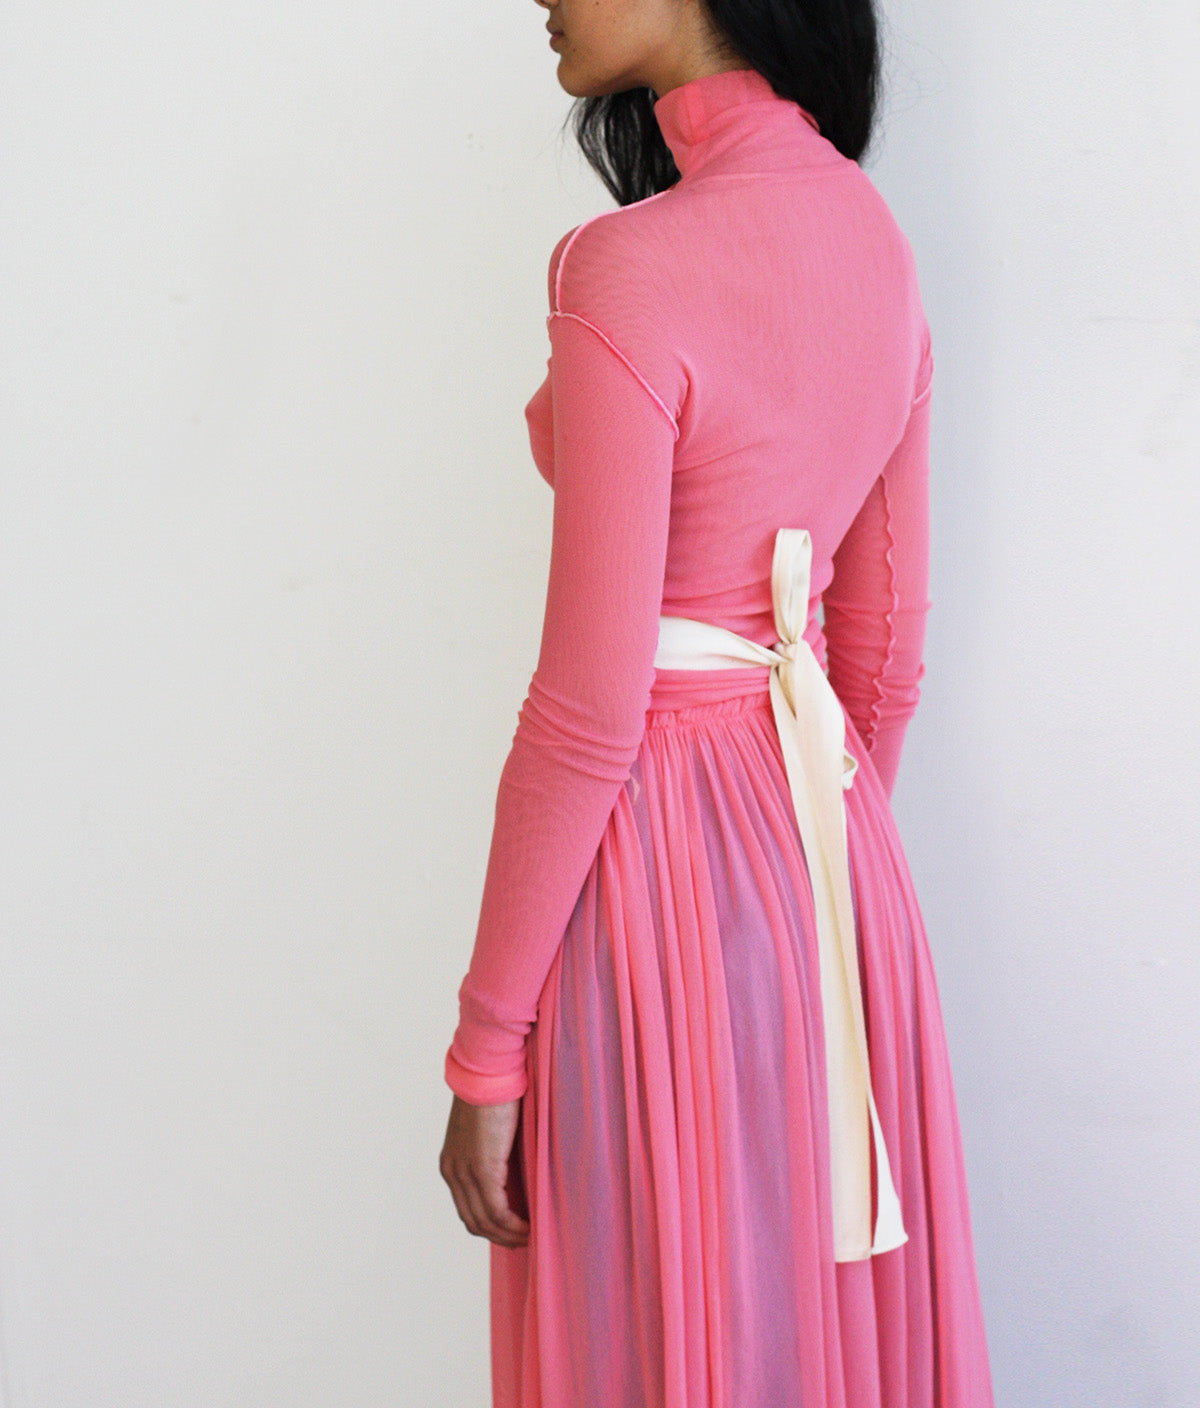 LOOK 6 (PINK ROSAS DRESS & BABYBLUE TAILORED WORKTROUSERS)